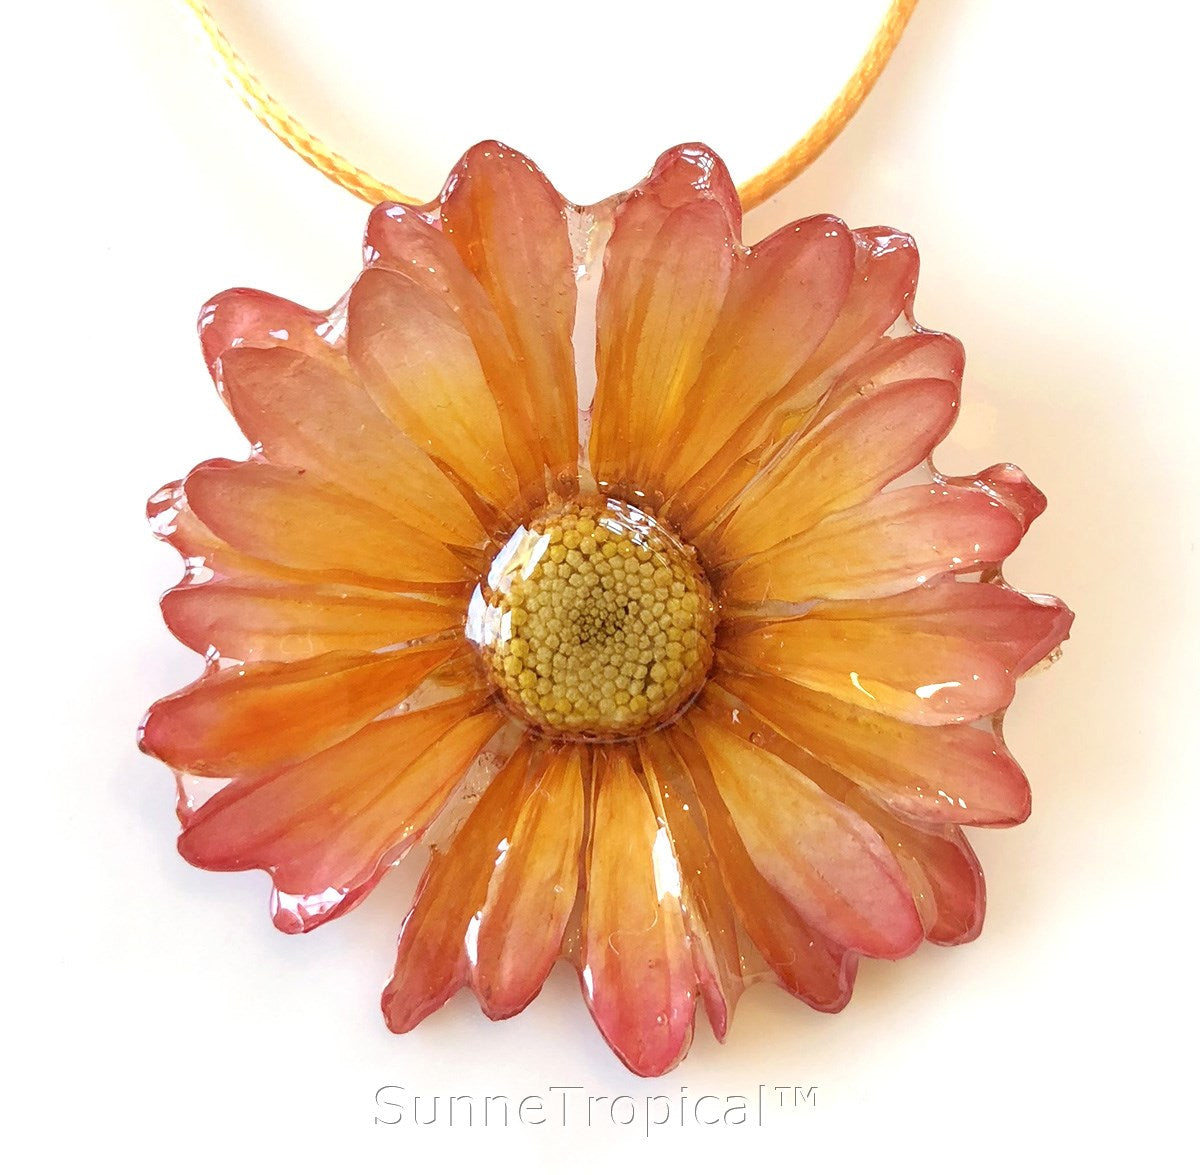 Daisy Mum Real Flower Jewelry Pendant Necklace Yellow Sunnetropical